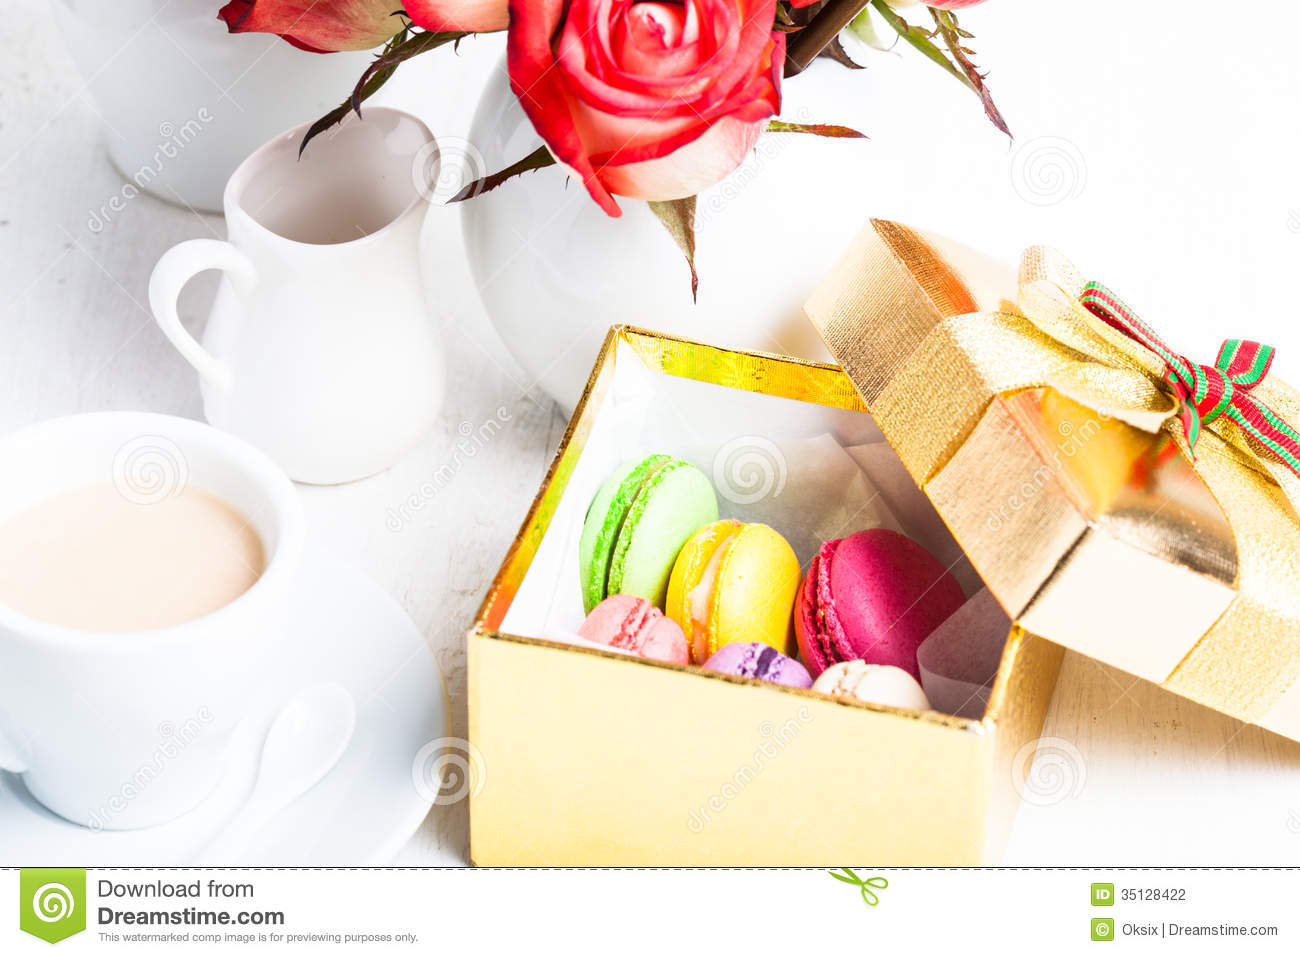 Macaroons In Gift Box Stock Photography - Image: 35128422